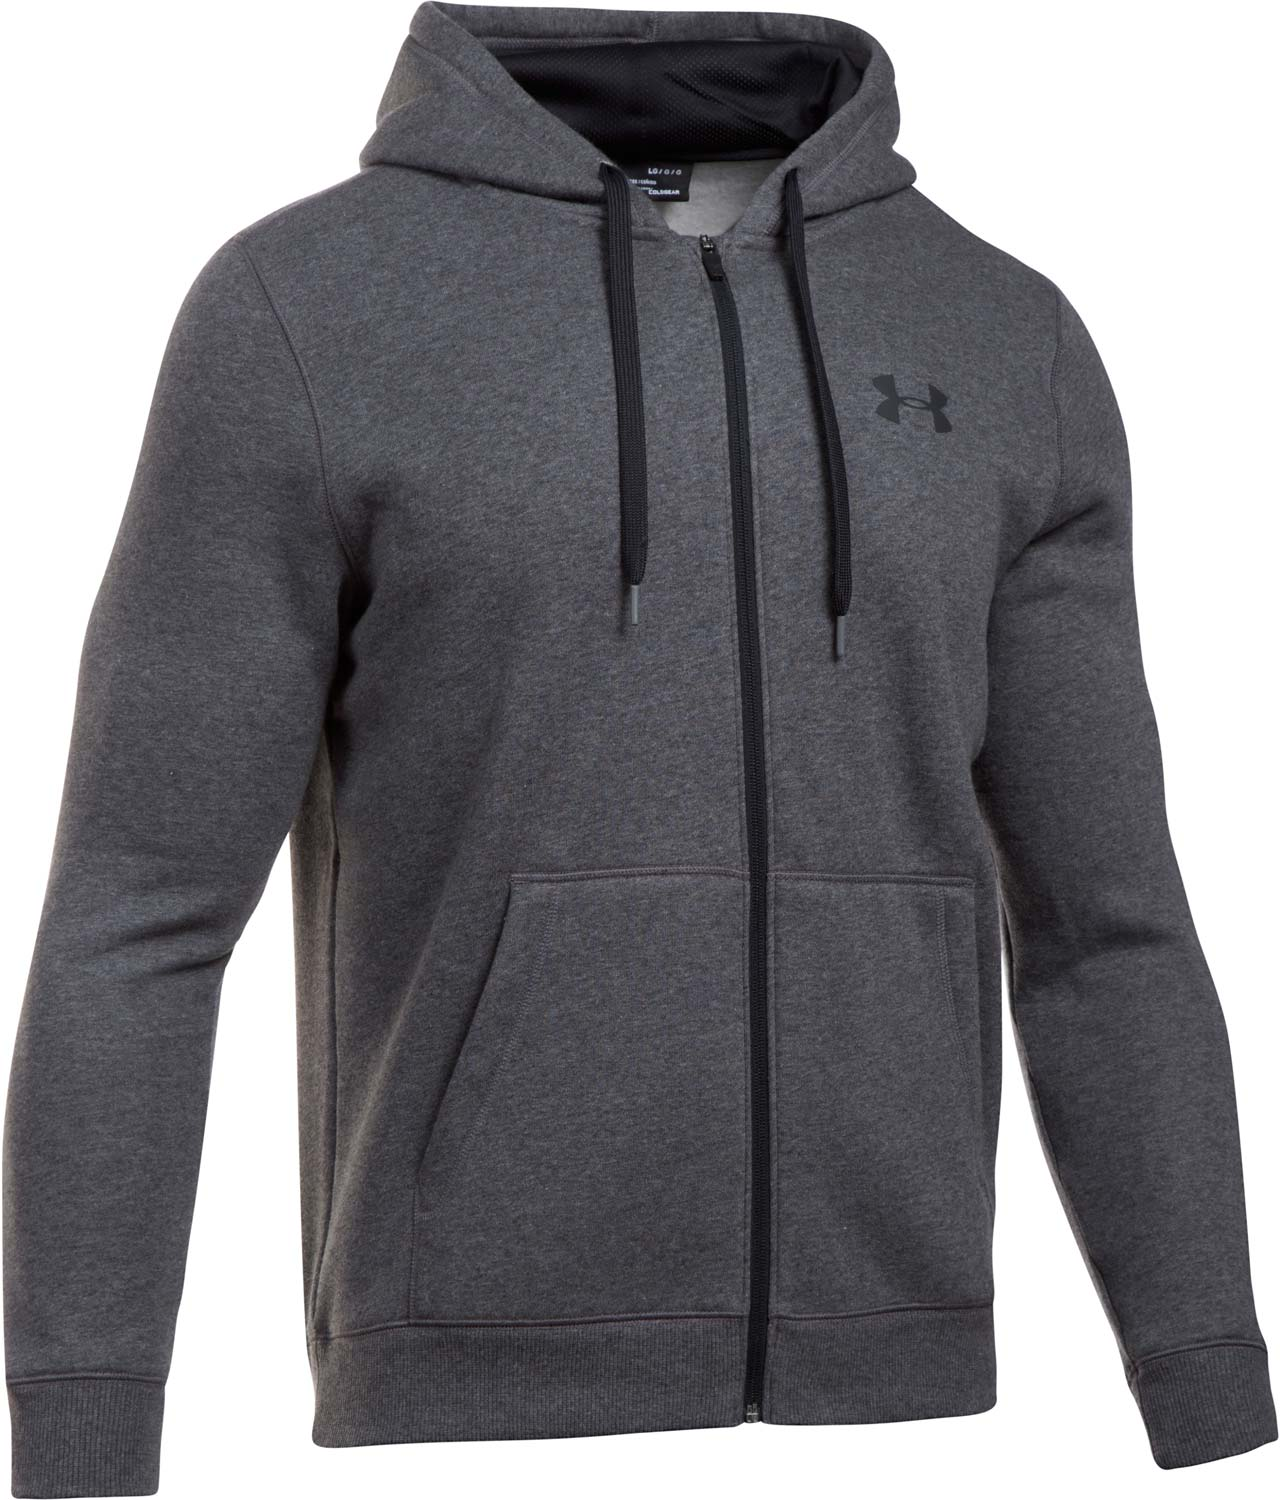 465ed2e6ee6 Under Armour RIVAL FITTED FULL ZIP. Pánská mikina